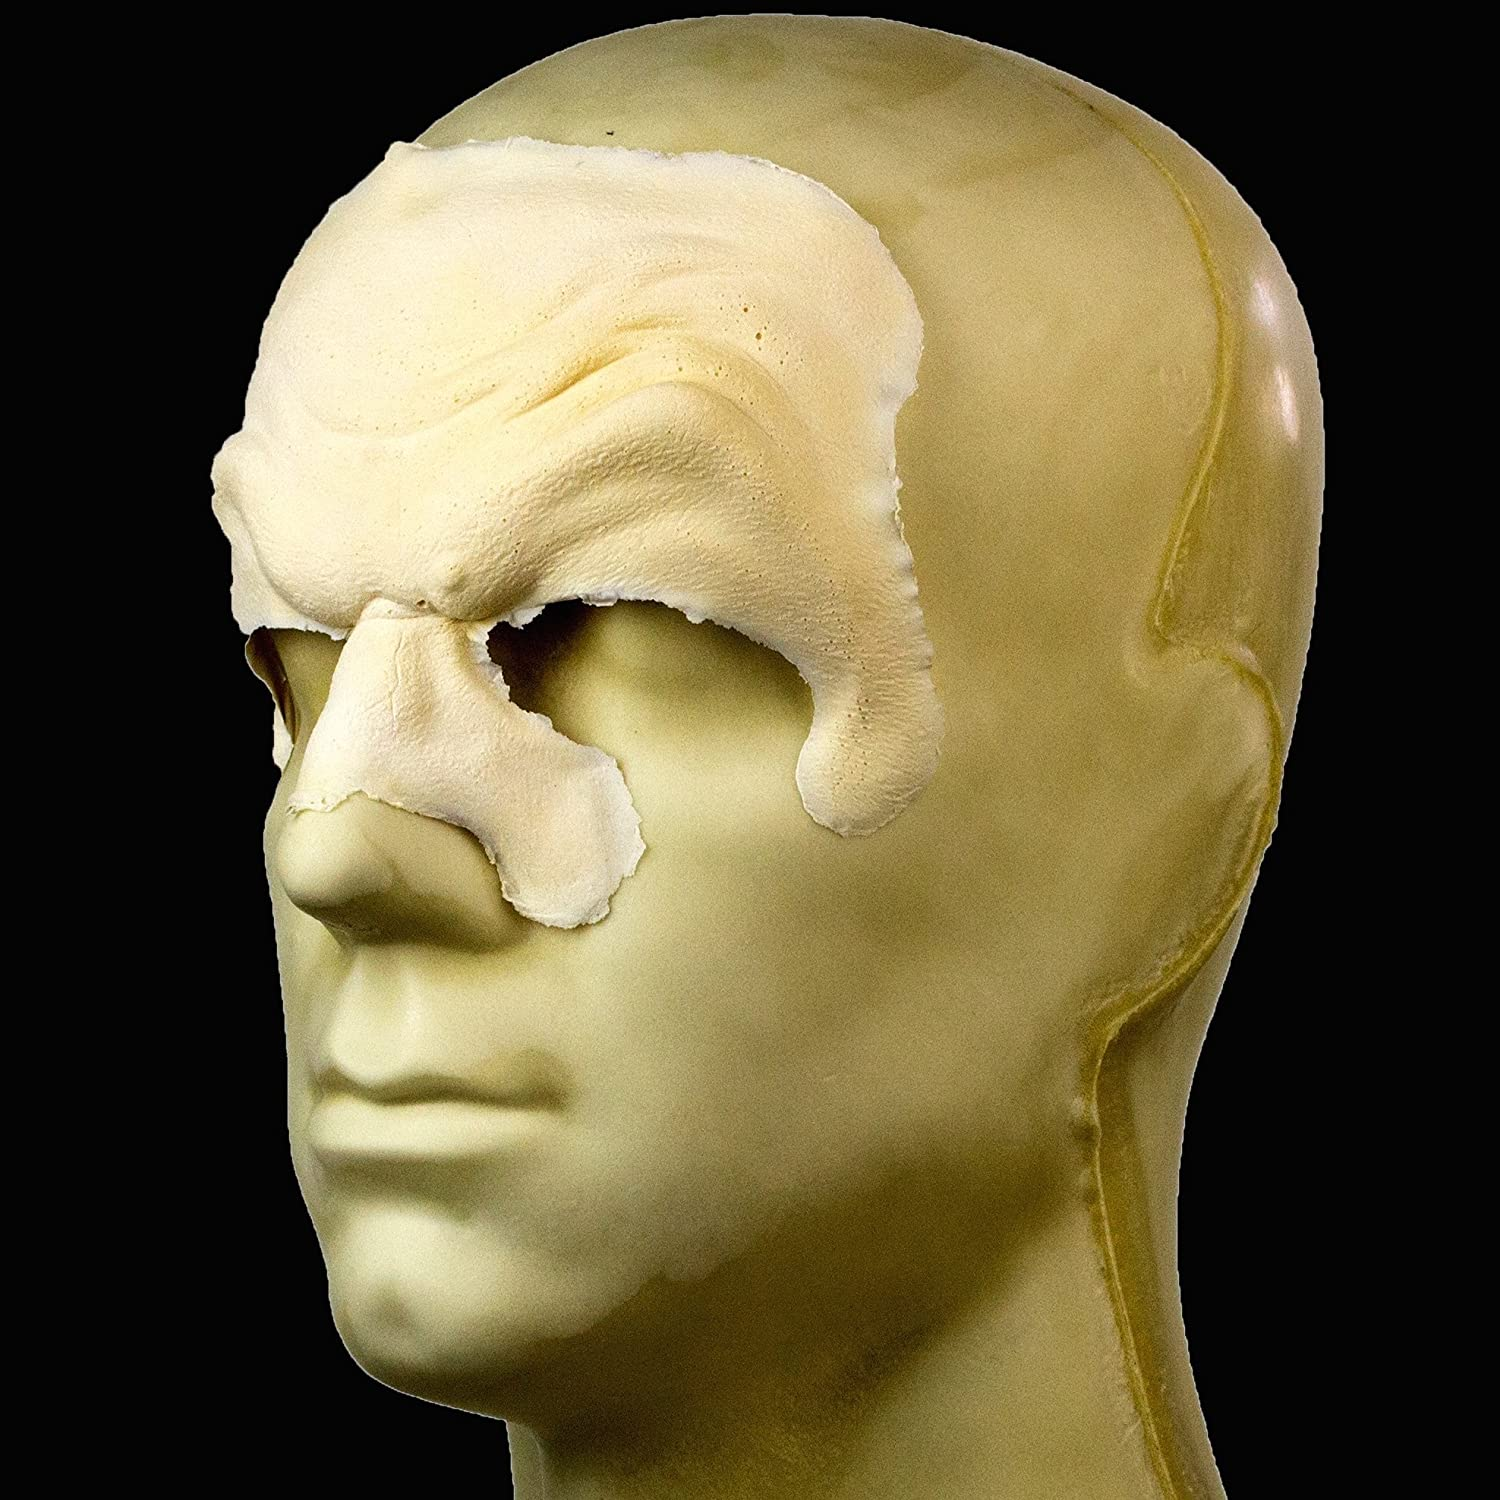 Rubber Wear Foam Latex Prosthetic - Evil Forehead FRW-063 - Makeup and Theater FX